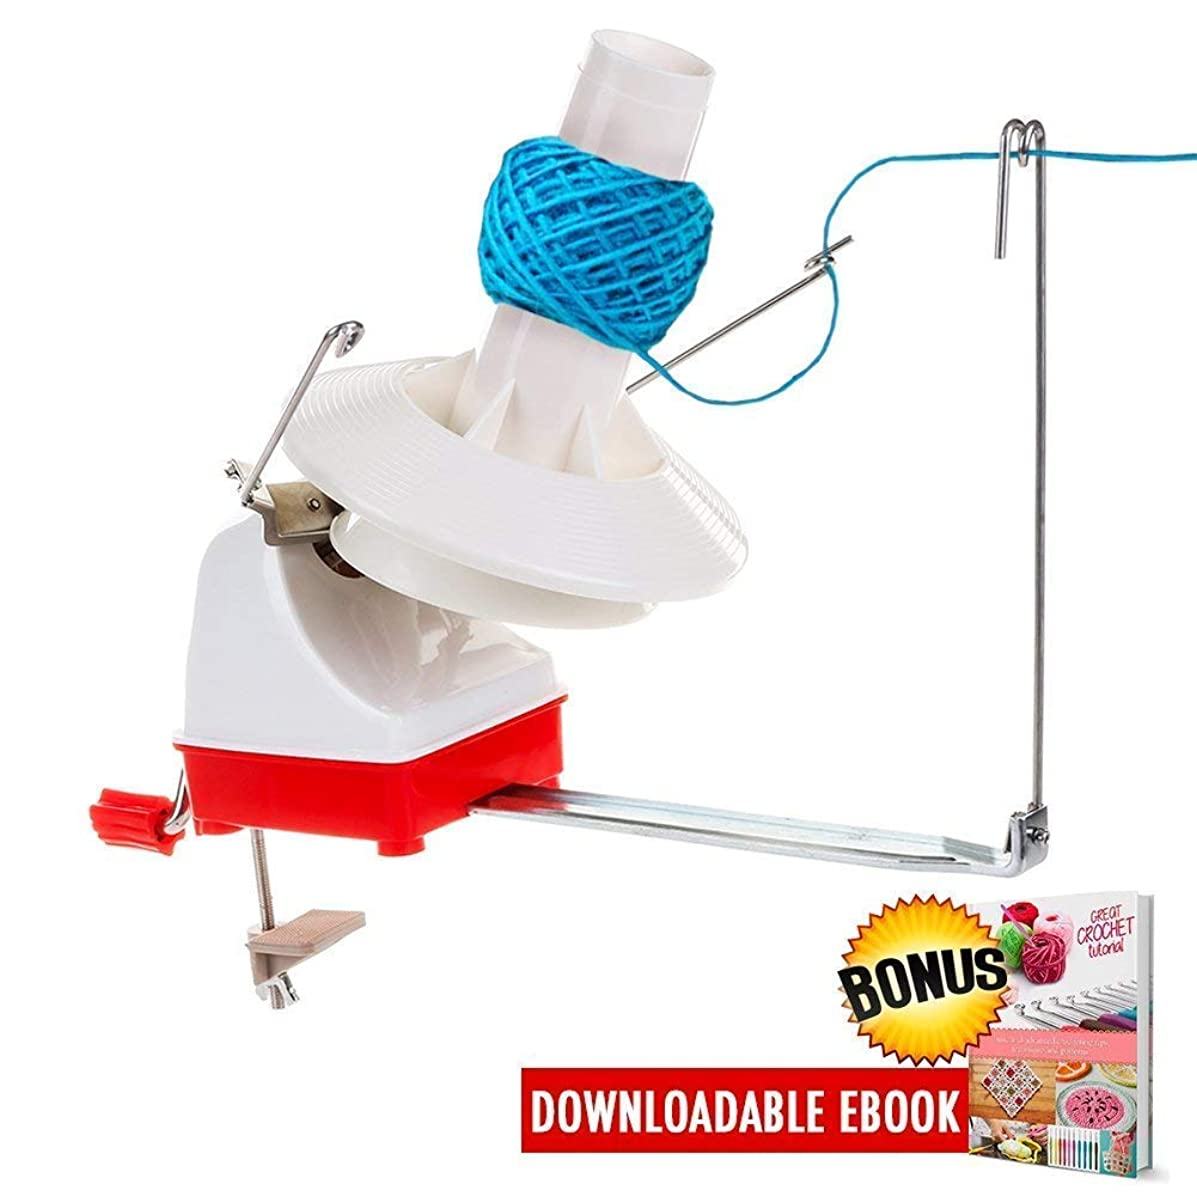 Yarn Ball Winder, Effective Jumbo Size 7-Ounce Capacity Hand Operated Yarn Winder Spinner Baller Roller for Thick Large Wool Yarns Storage Sewing Knitting Crocheting Needs with Crochet Tips Ebook